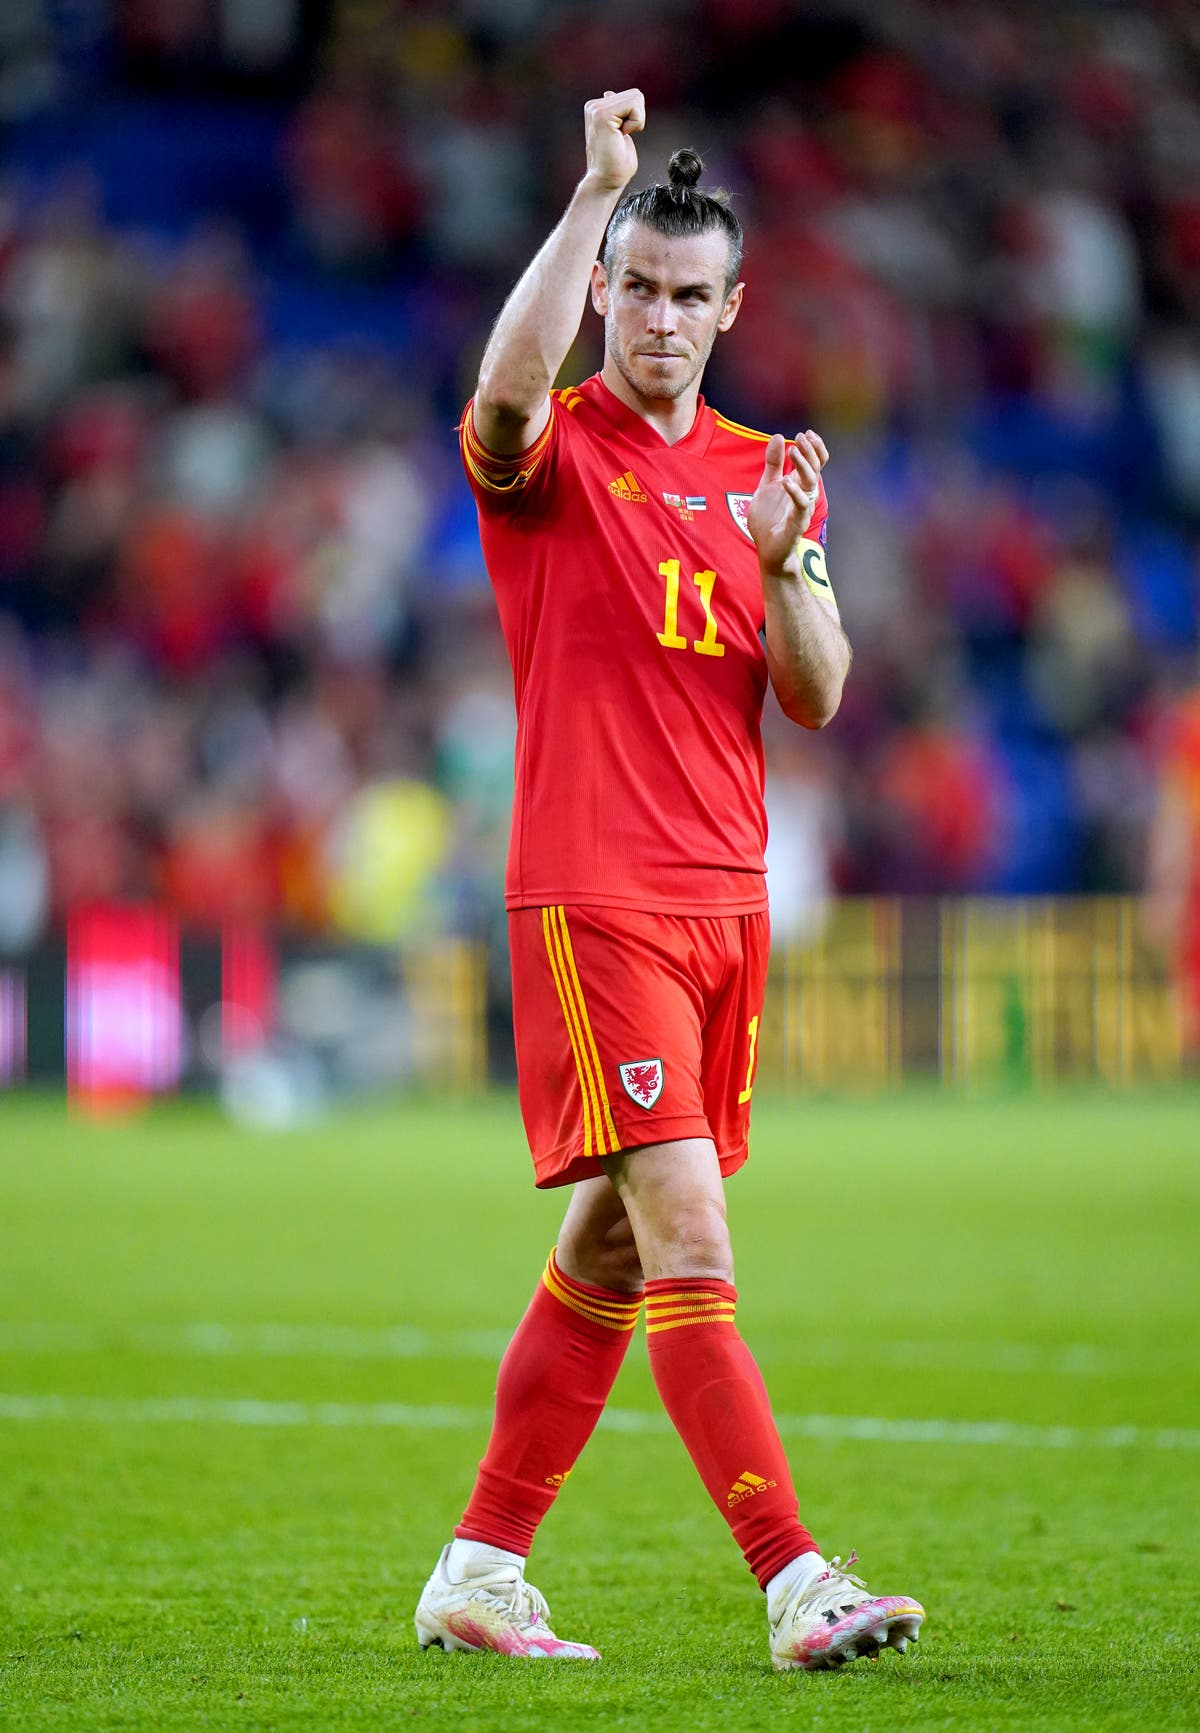 Wales still have plenty to play for despite disappointing draw – Gareth Bale